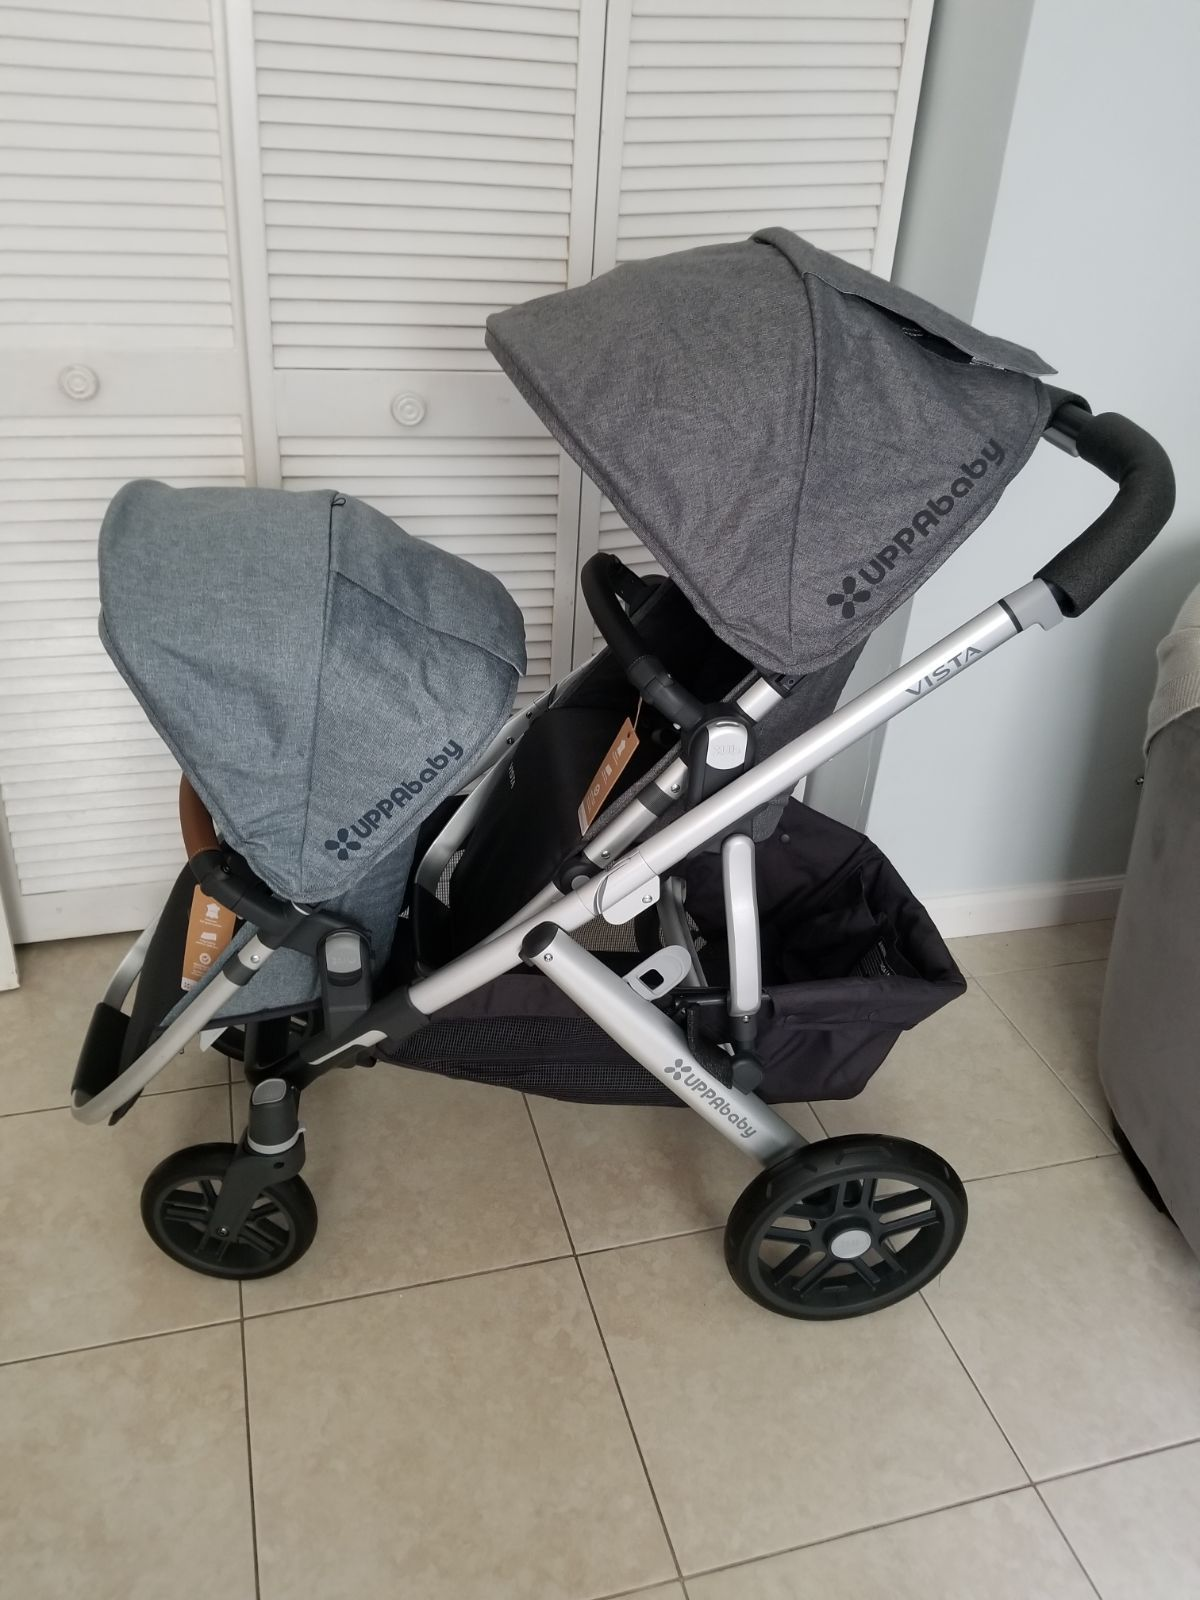 42++ Uppababy vista double stroller price ideas in 2021